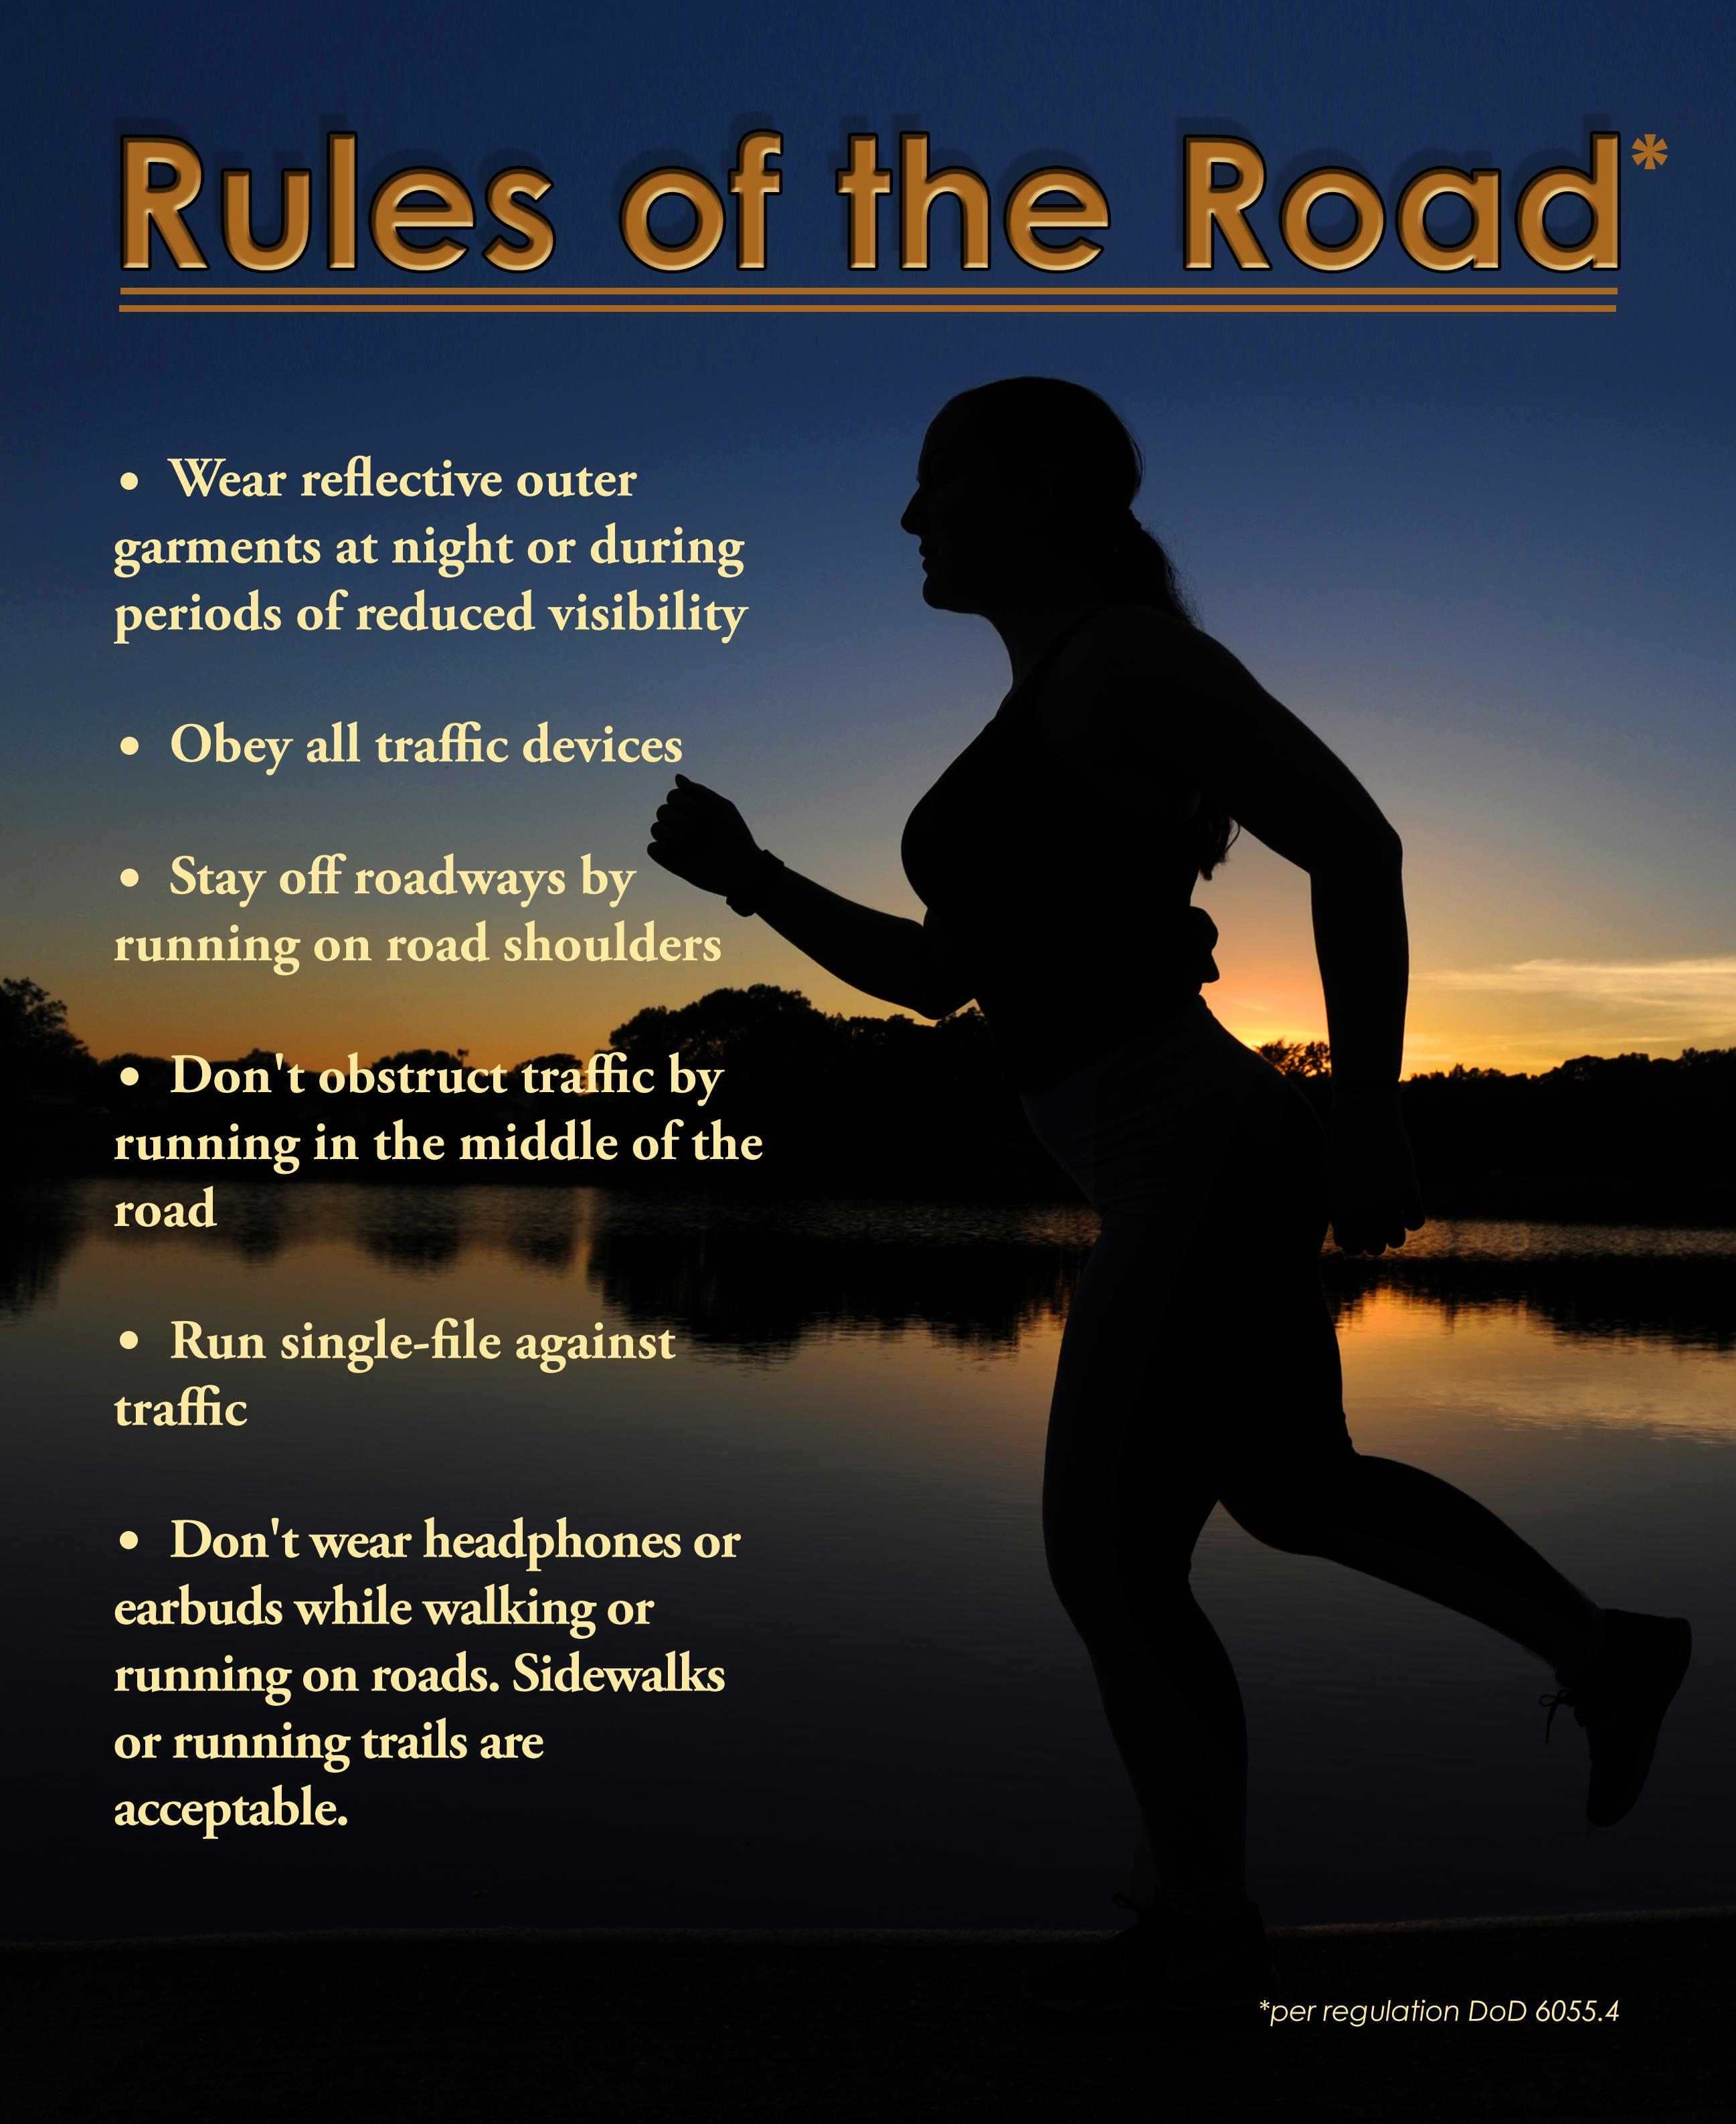 Picture of woman jogging at dusk with rules of safe jogging lining the page in front of her.